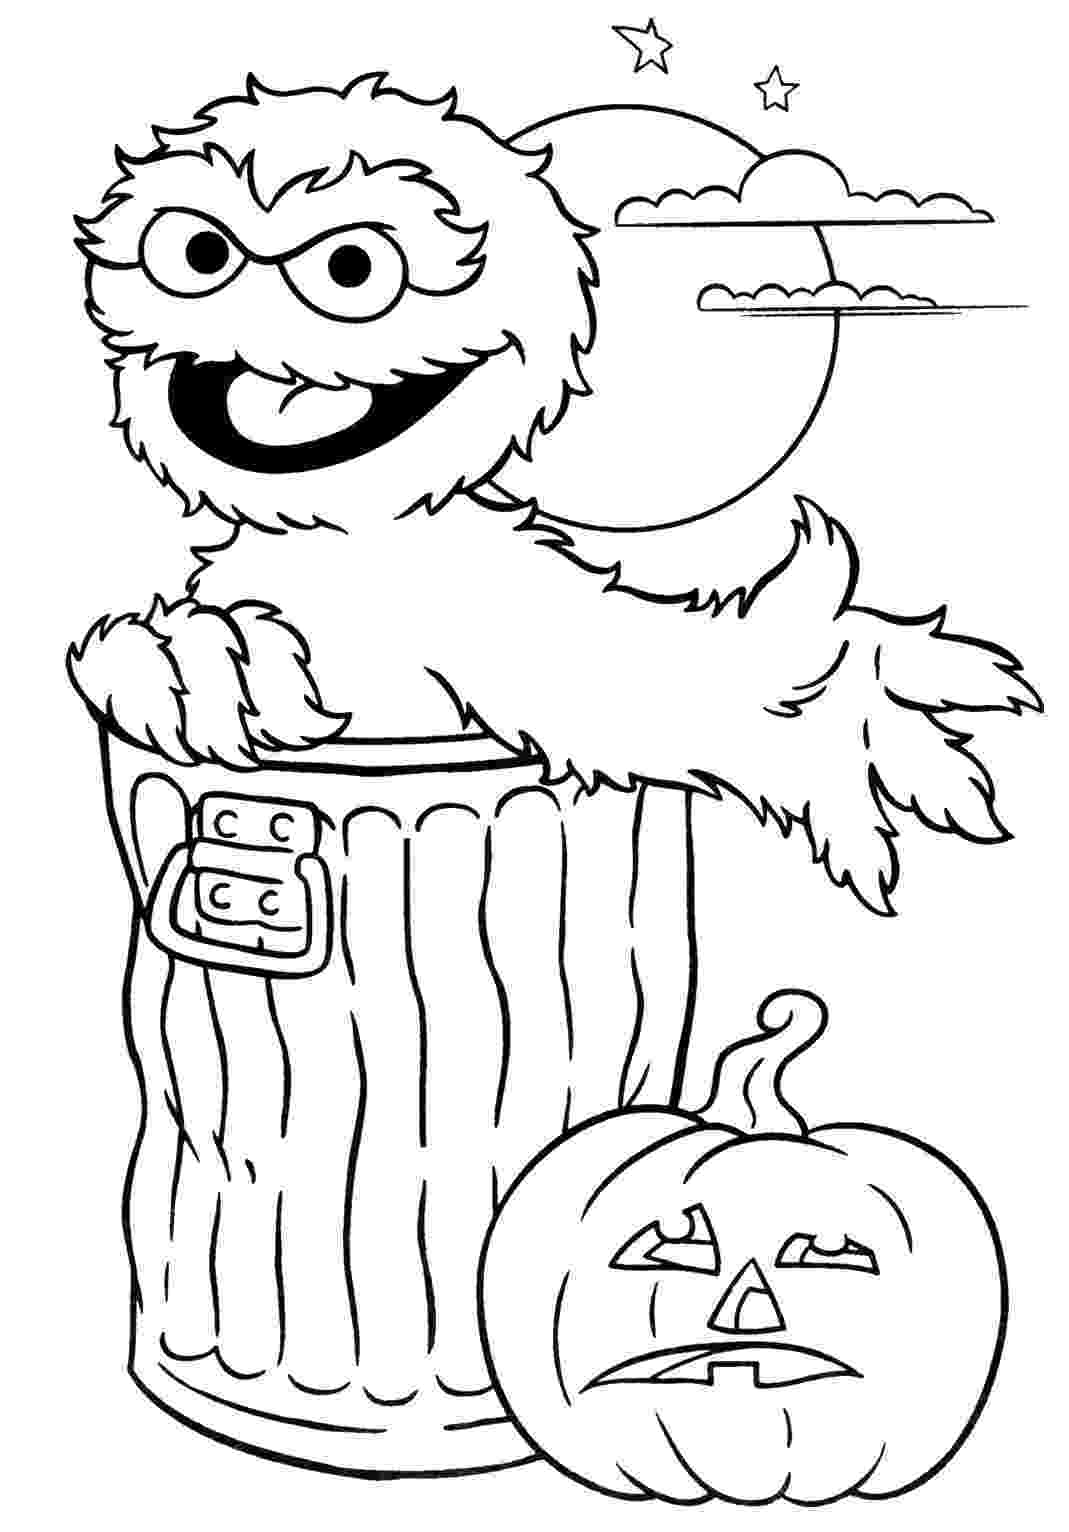 colouring pages for halloween free printable halloween coloring pages free printable halloween halloween free for pages printable colouring